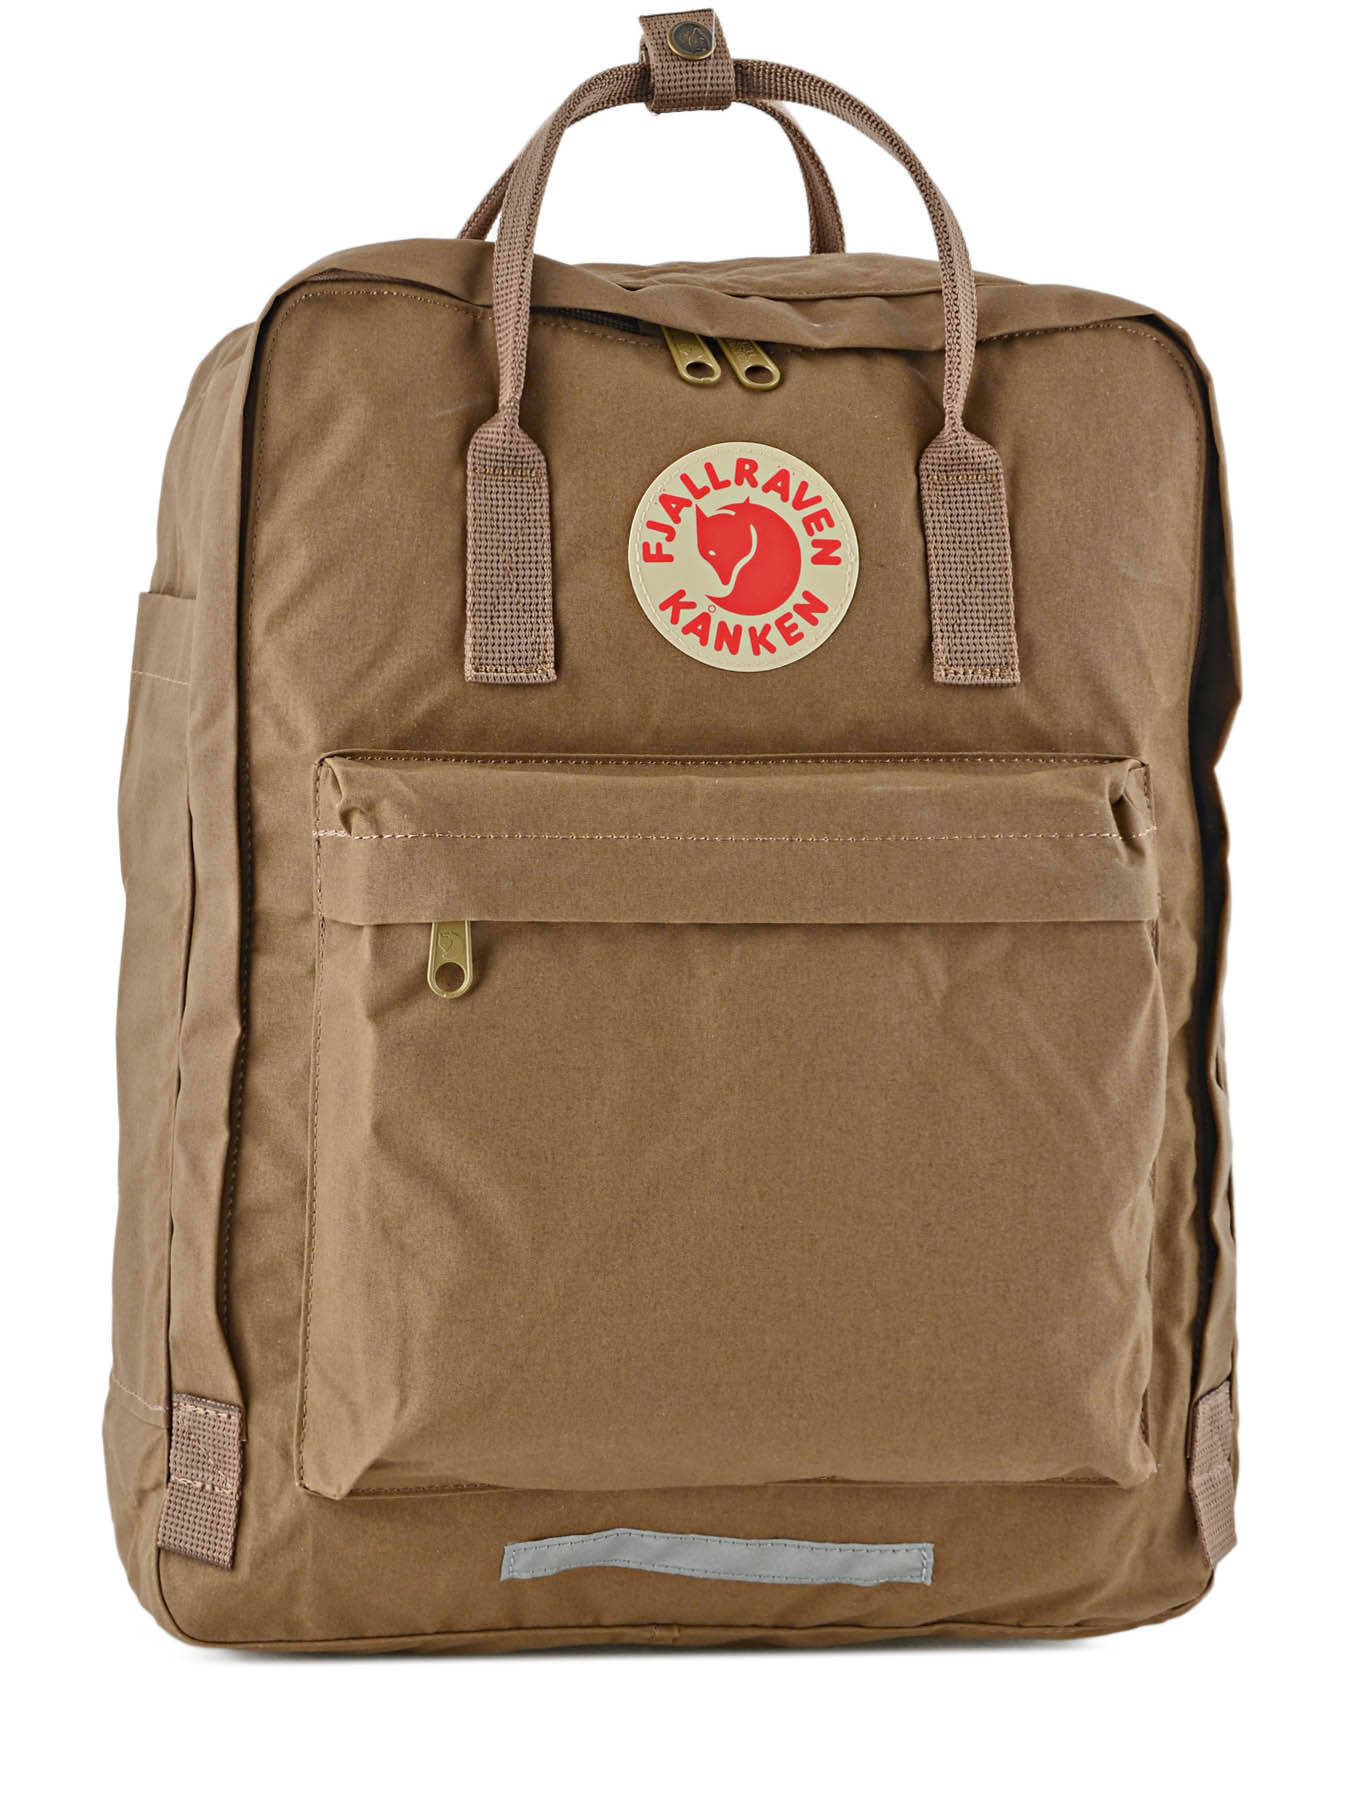 sac dos fjallraven kanken sand en vente au meilleur prix. Black Bedroom Furniture Sets. Home Design Ideas